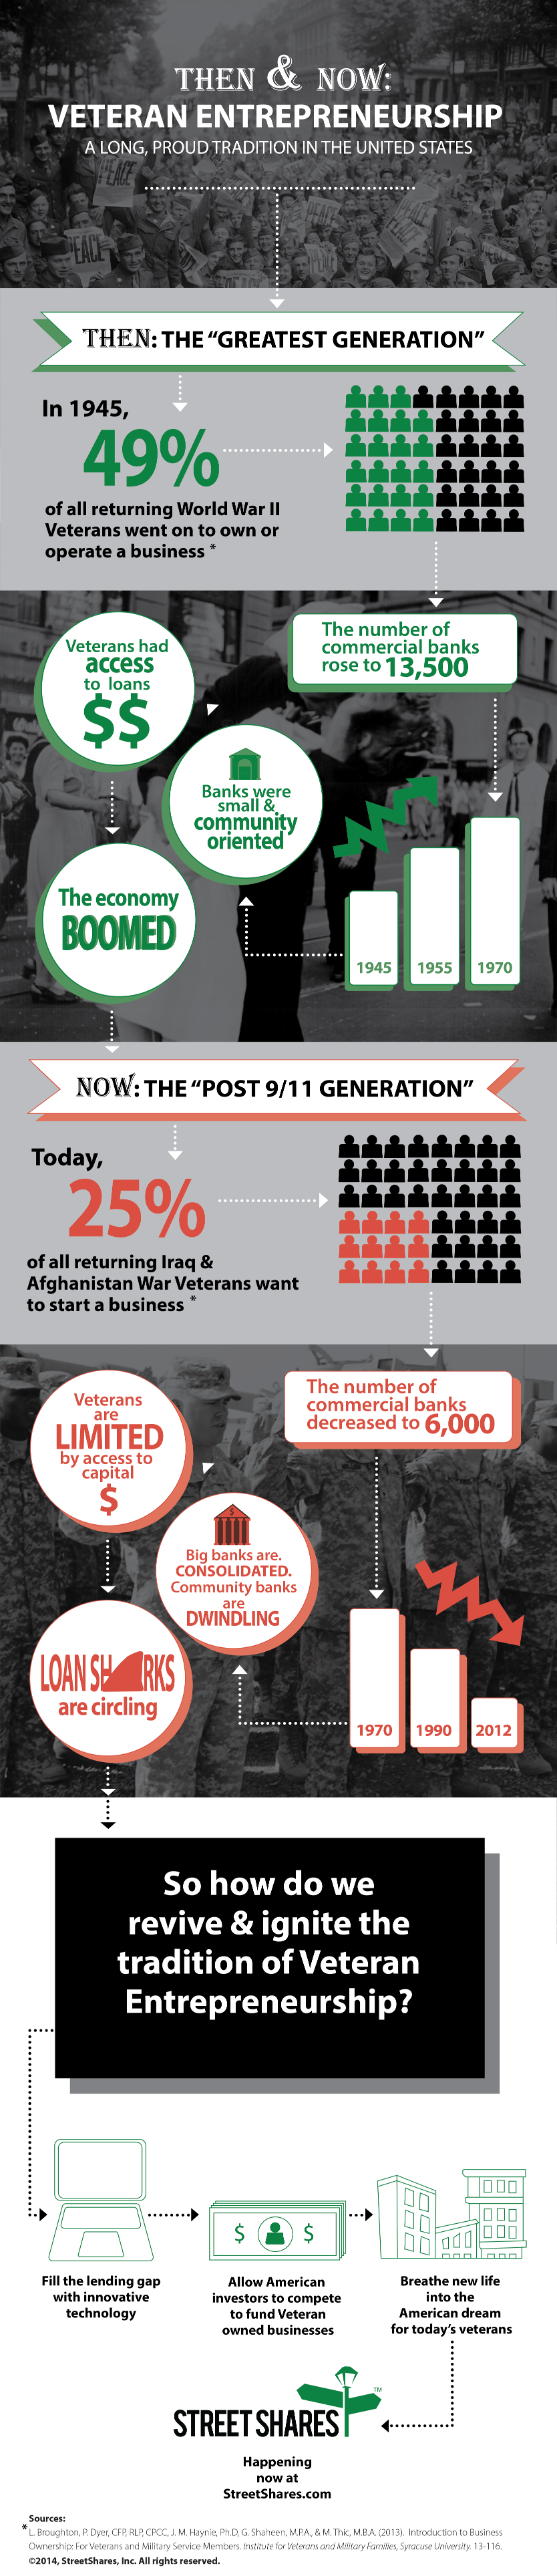 Infographic: Veteran Entrepreneurship a Long, Proud Tradition in the United States